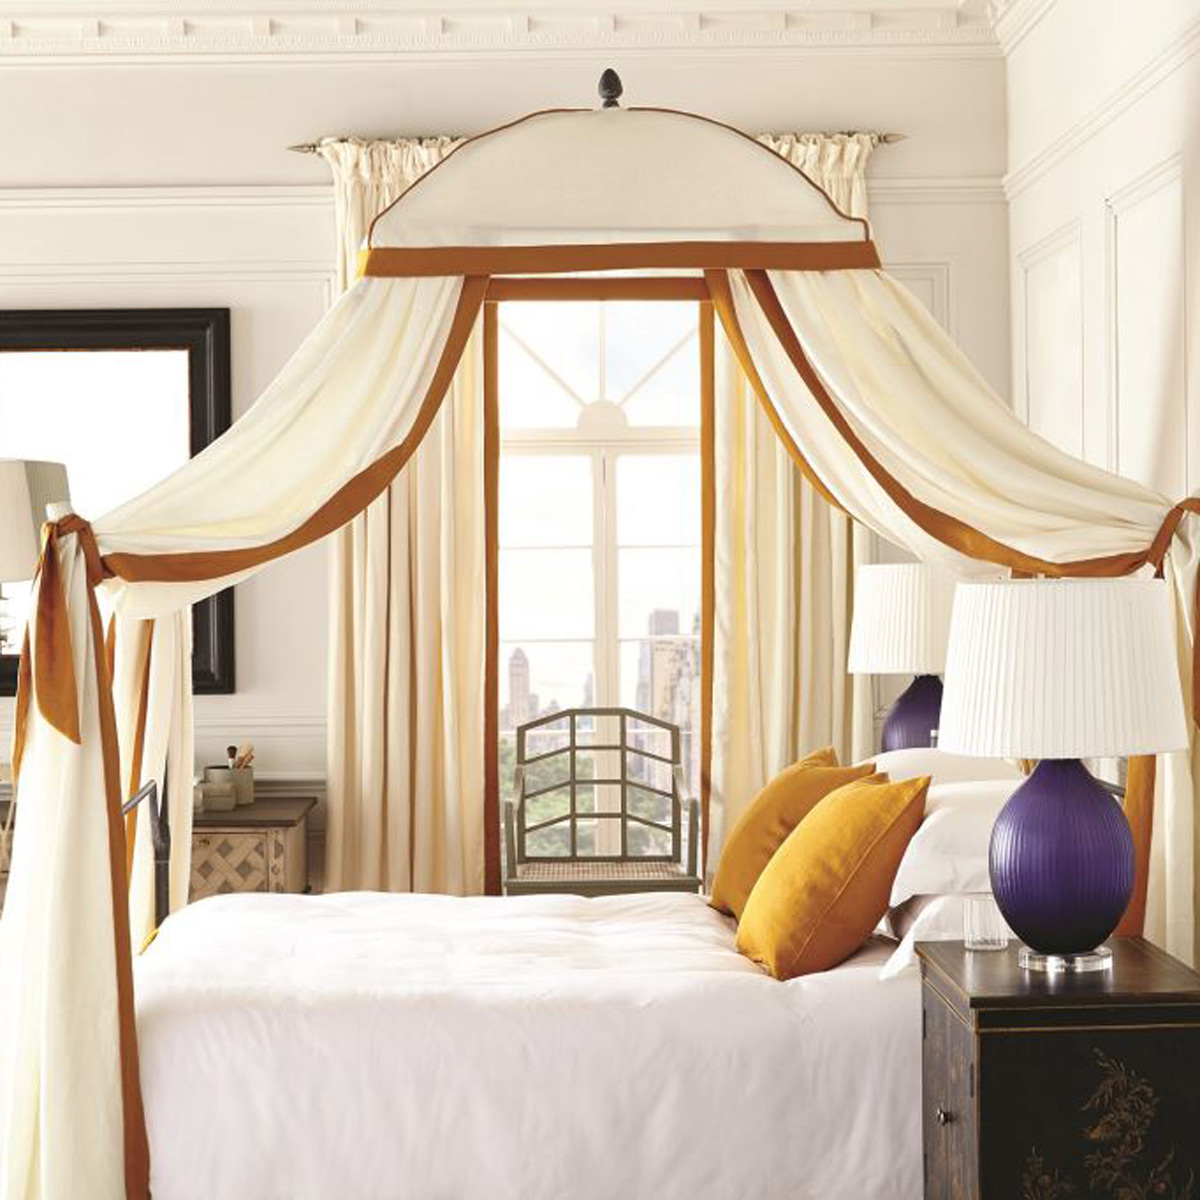 Good Home Design Ideas: 5 Of The Best Bedrooms